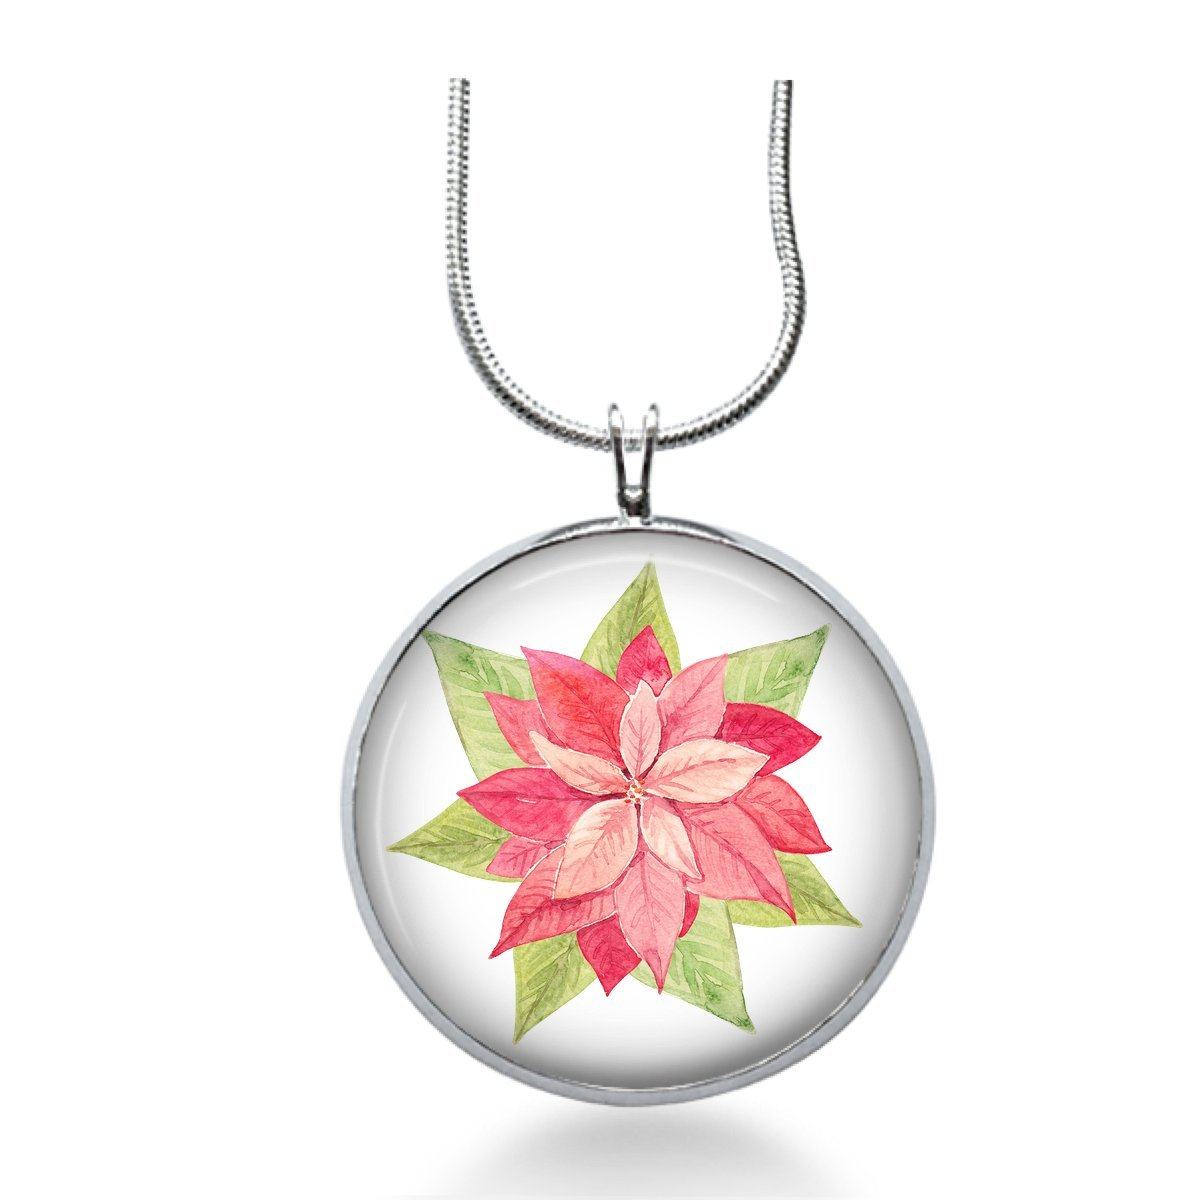 Christmas Poinsettia necklace - Holiday Jewelry,